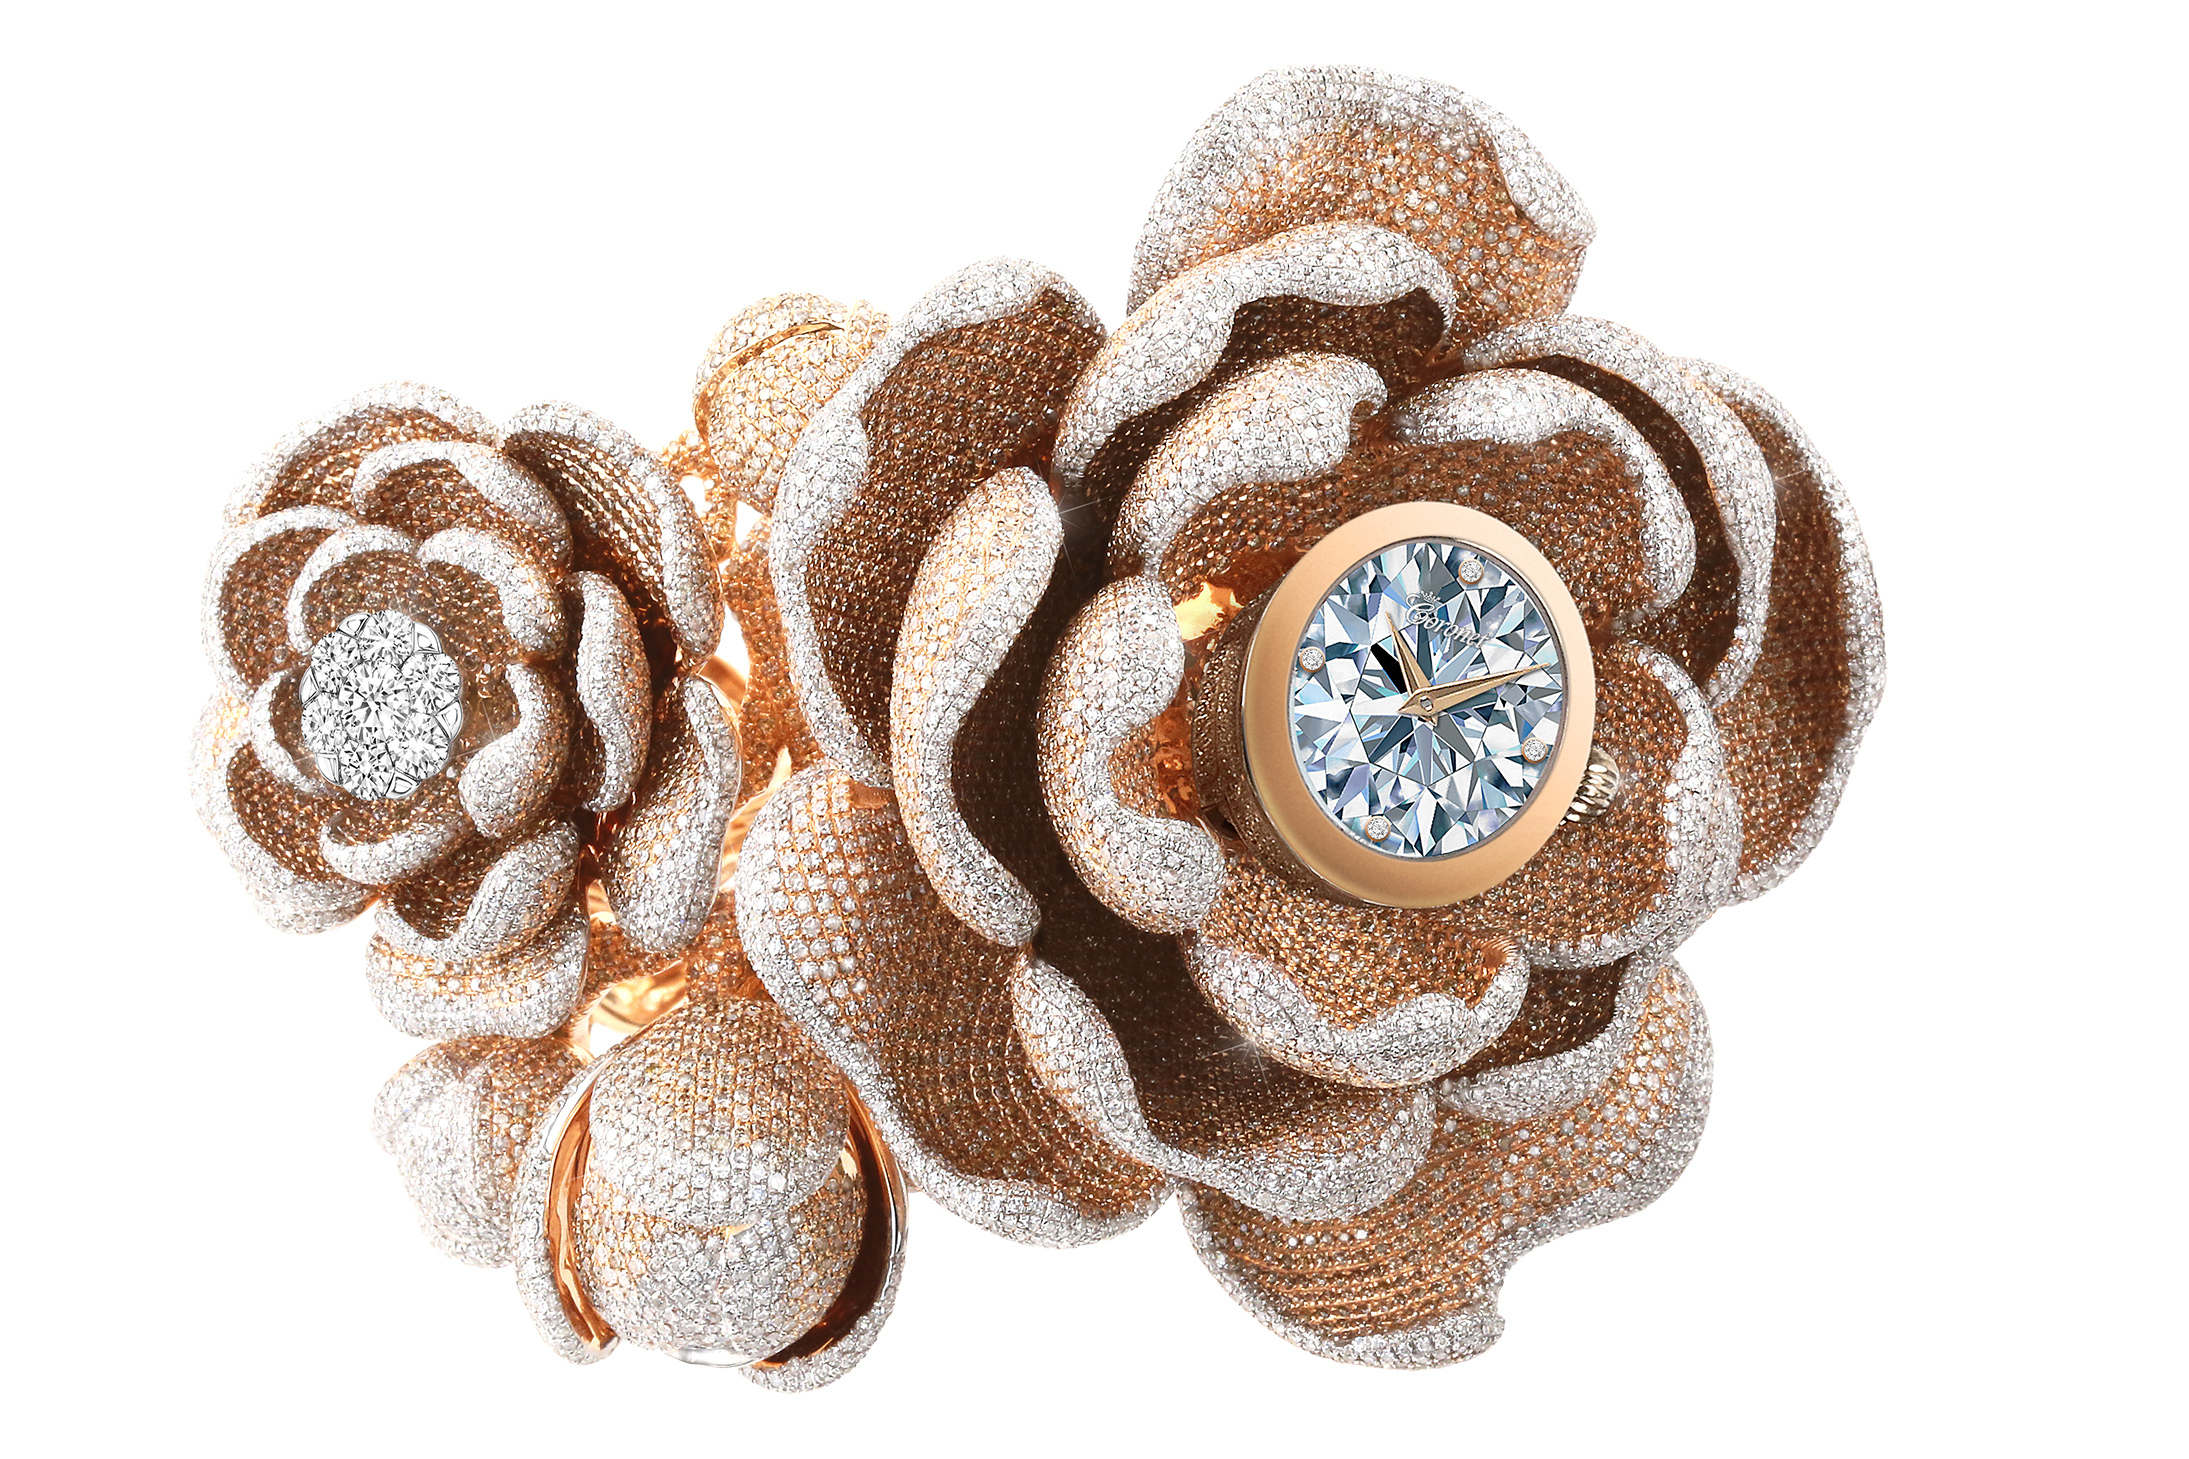 The Guinness World Records CORONET 'Mudan' diamond watch features 15,858 diamonds - most diamonds set in a watch. The watch is set in 18K gold with artist Reena Ahluwalia's unmatchable diamond painting on the dial. The watch is a co-creation between Aaron Shum and Reena Ahluwalia.